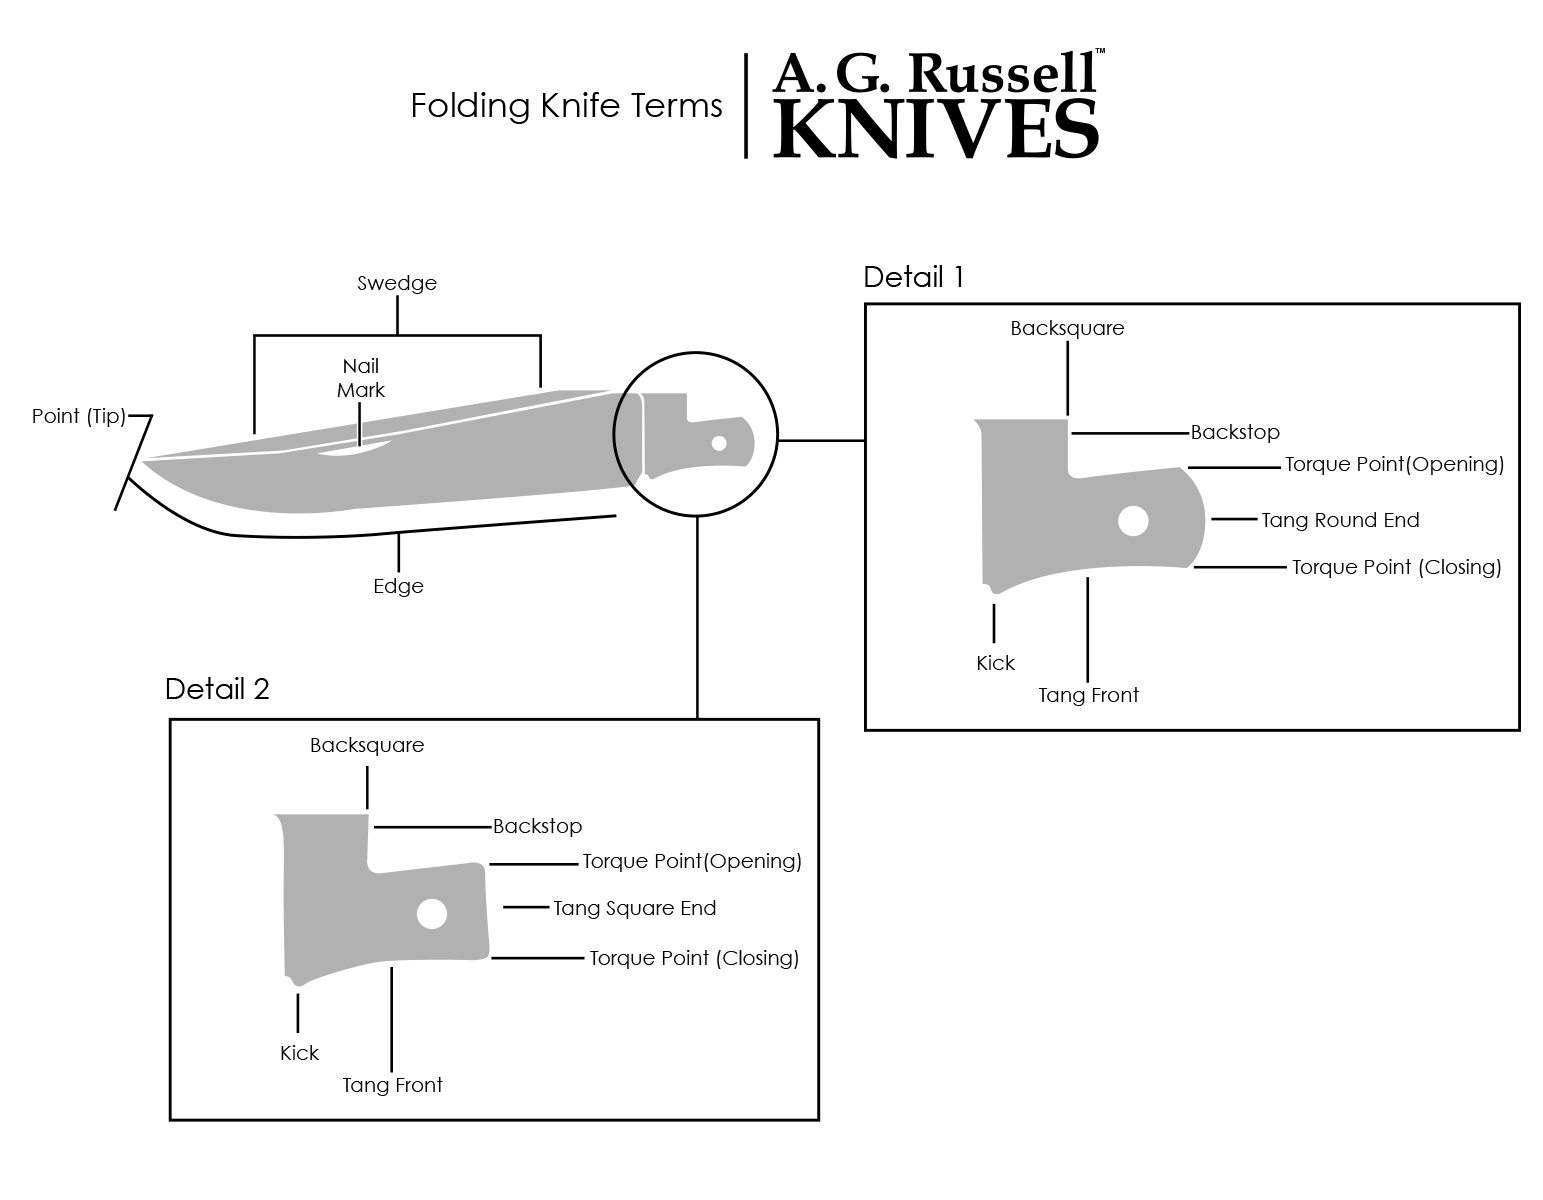 Folding Knife parts and terms for Slip Joint Folding Knives